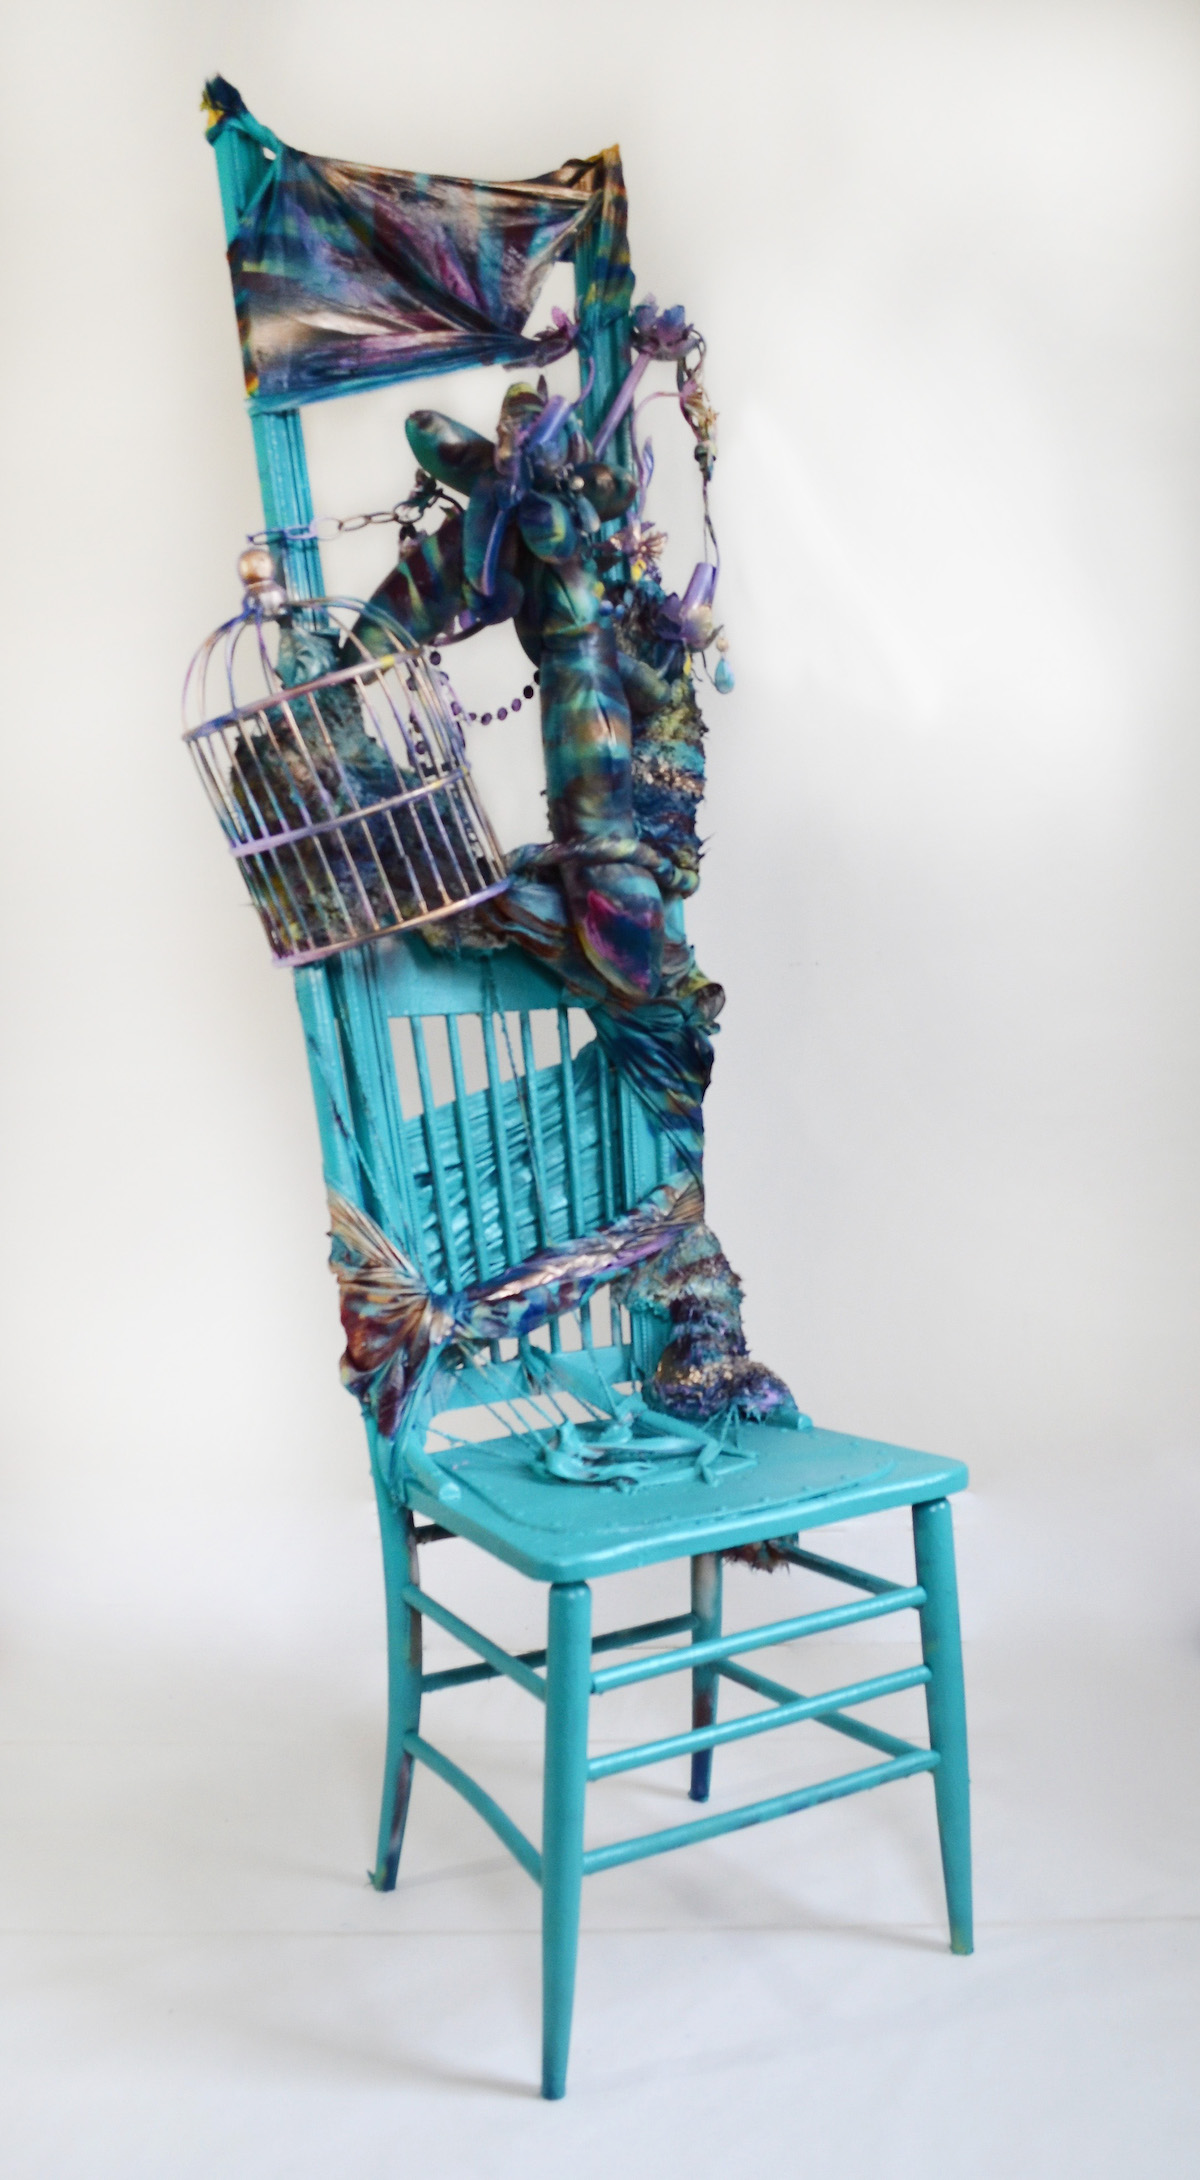 Throne,  2018 6'x2'x2.5', Found chairs, birdcage, chandelier, beads, moulding, furry fabric, spray paint, polyester fiberfill